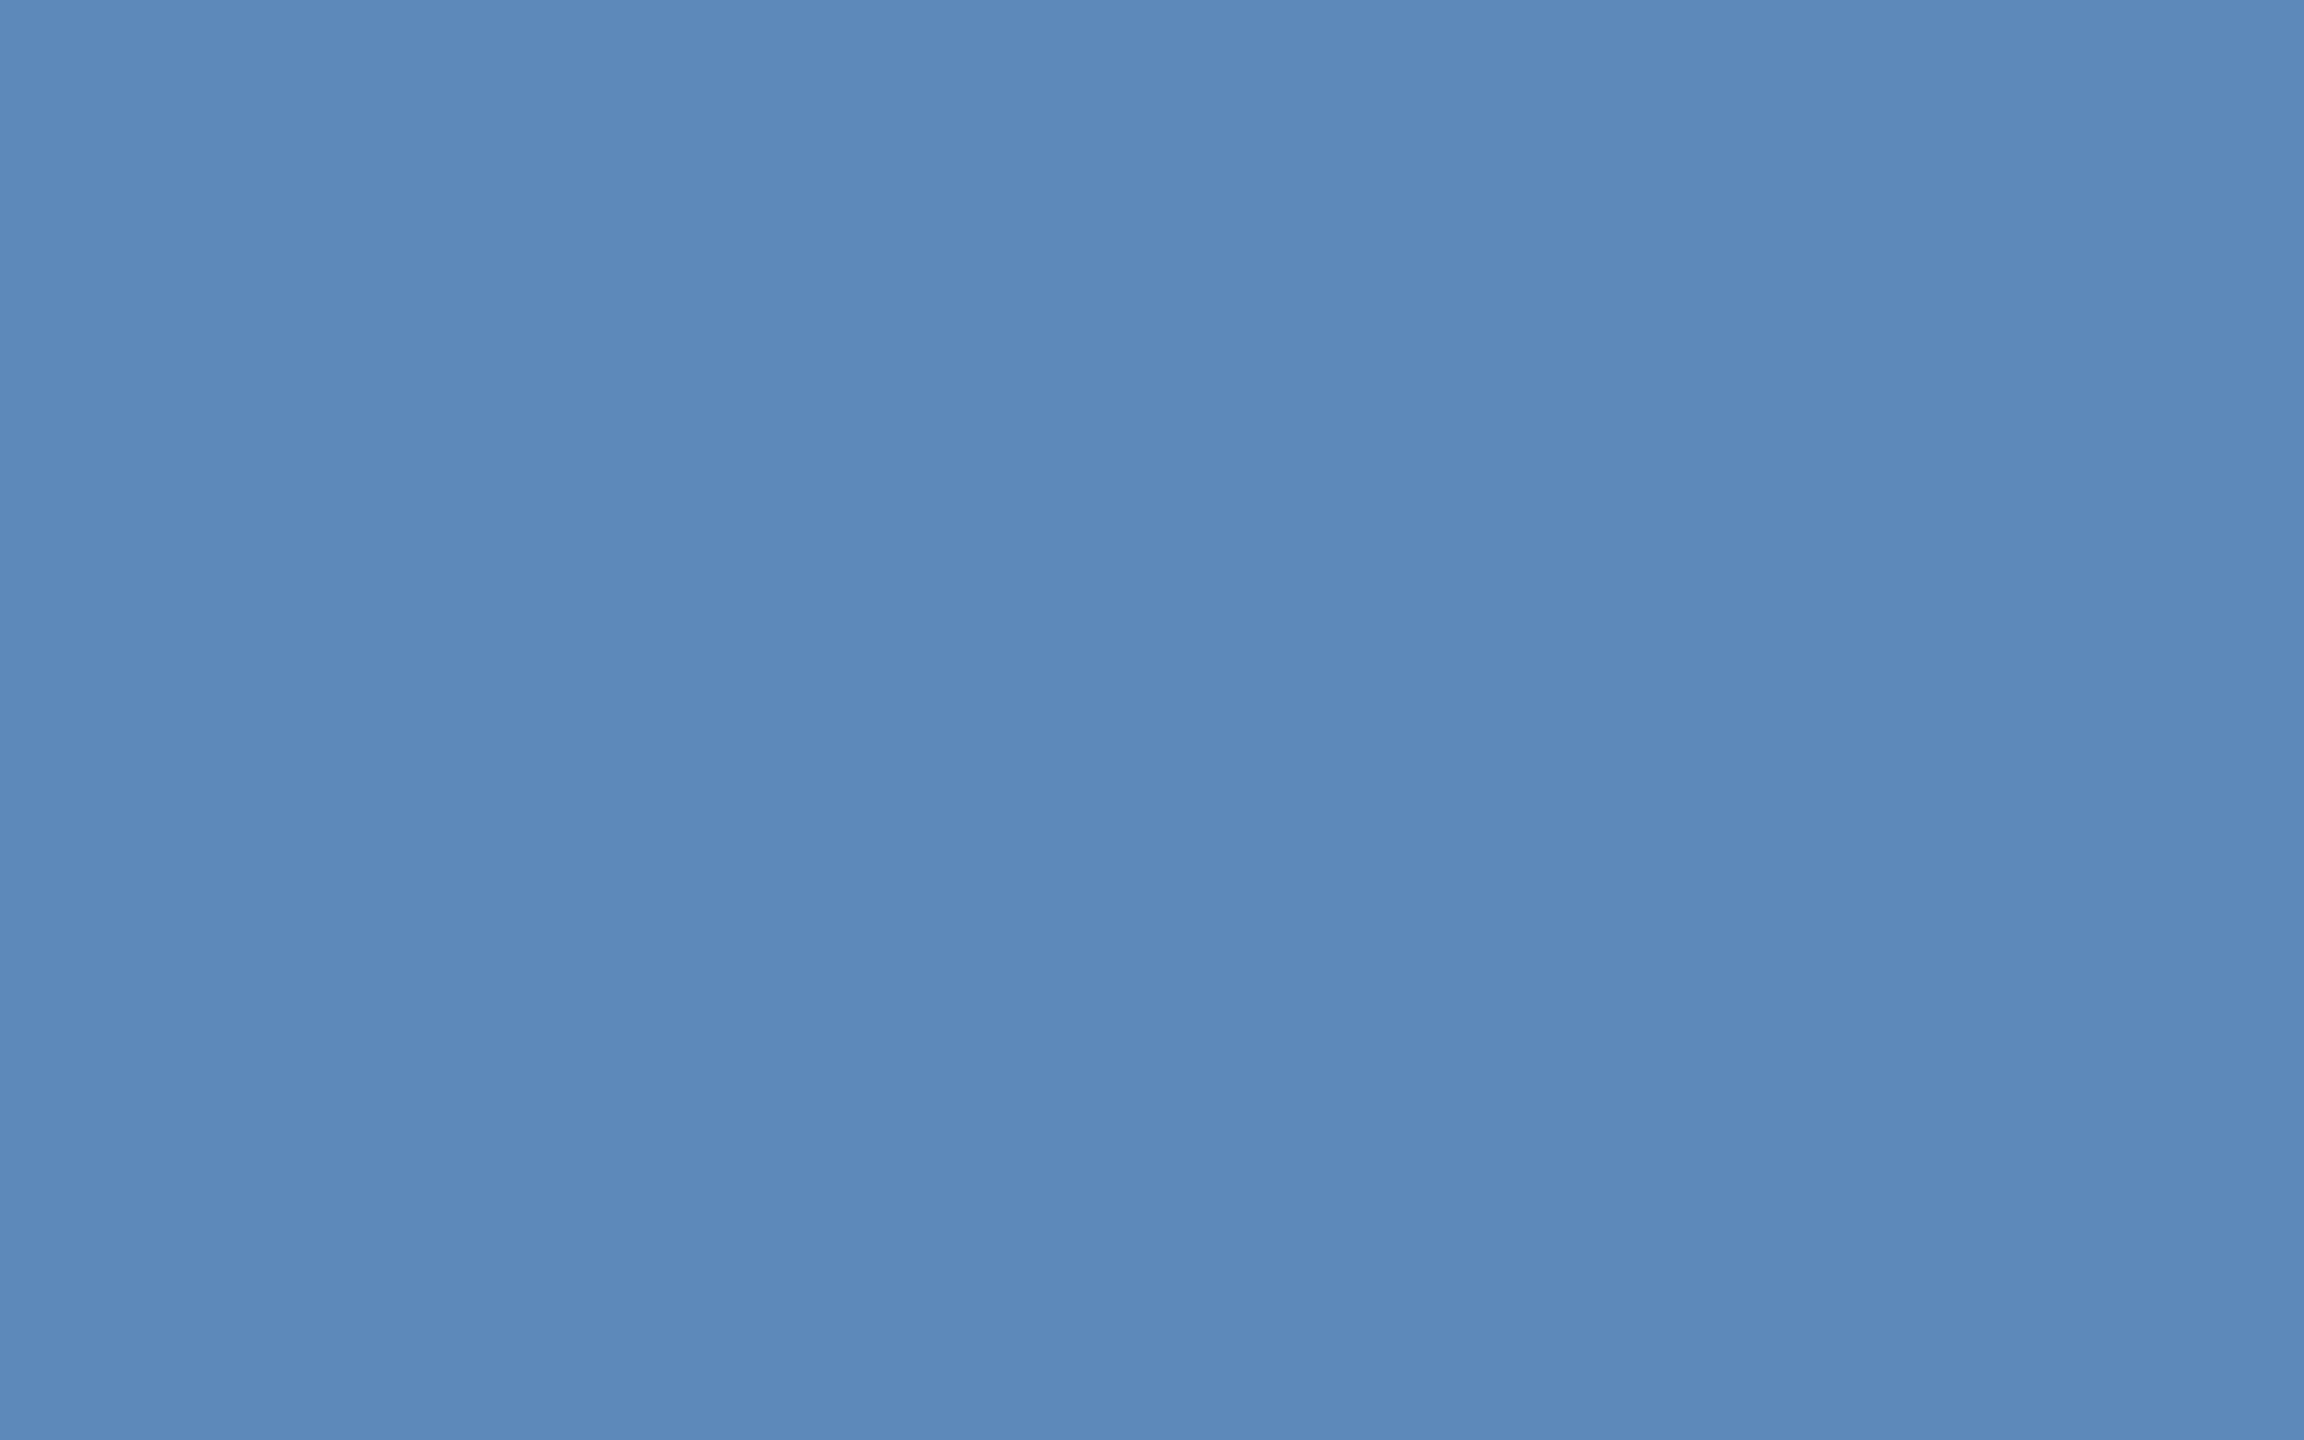 2304x1440 Silver Lake Blue Solid Color Background